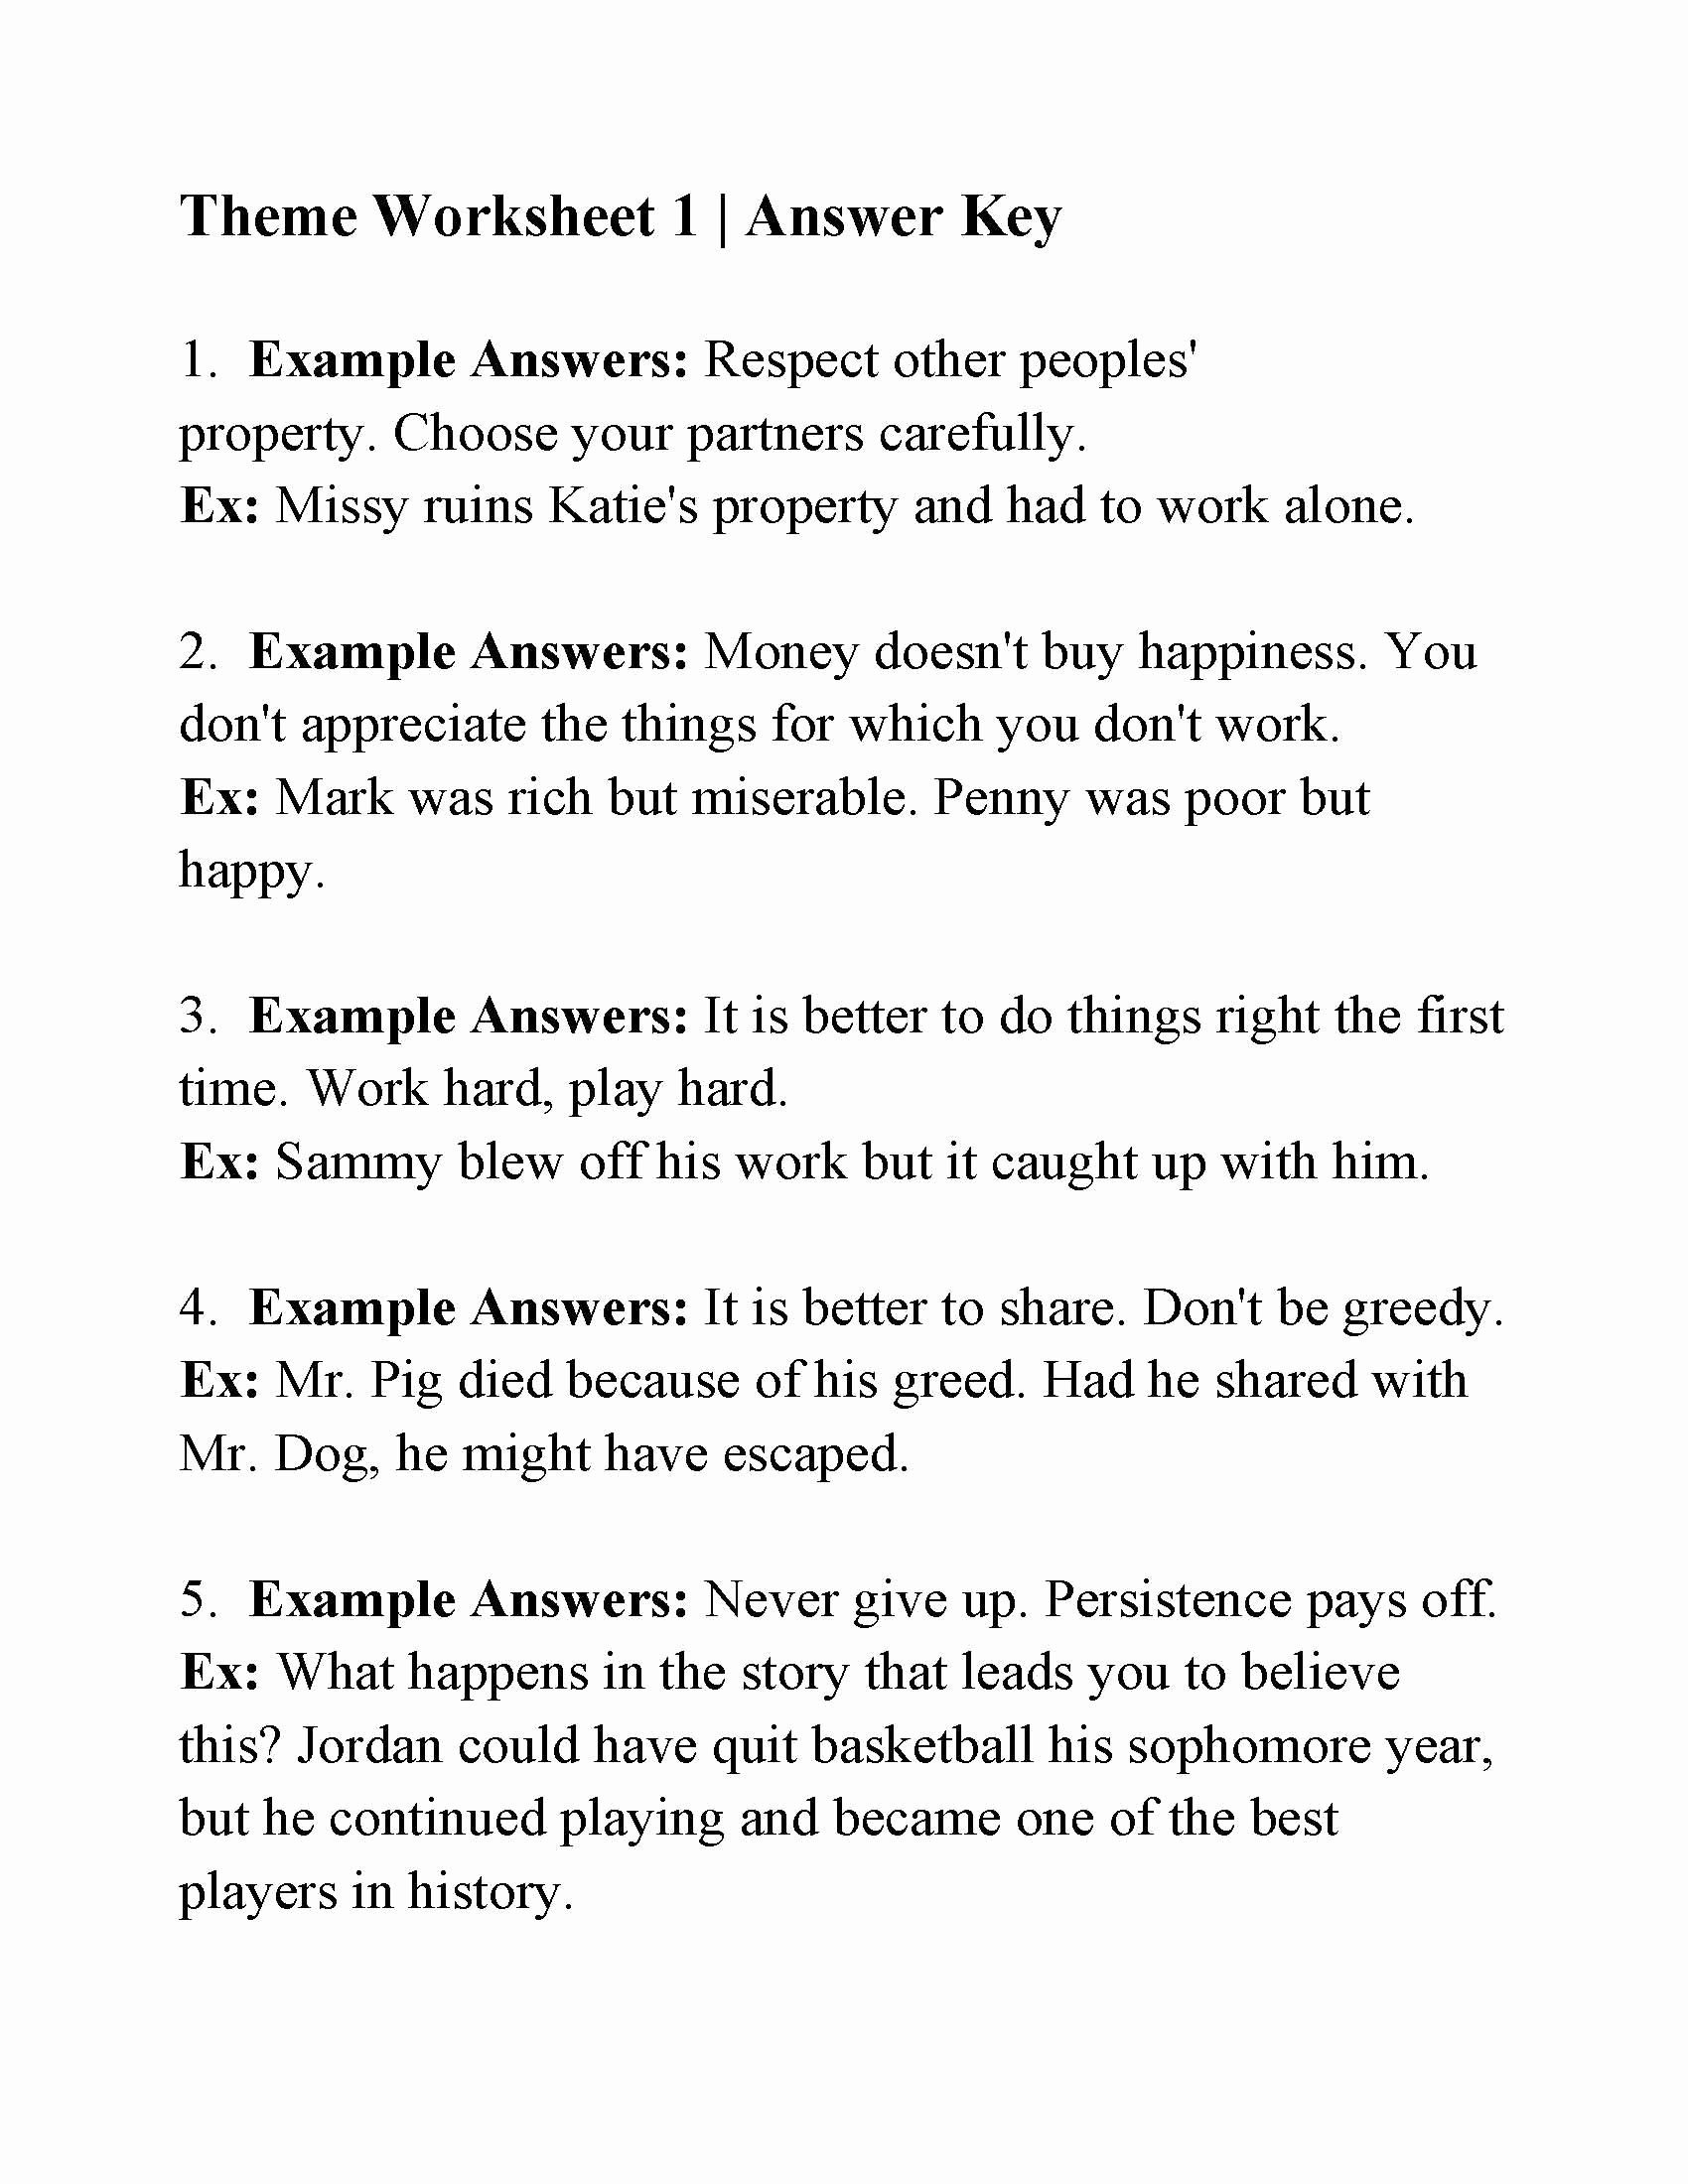 Literal Equations Worksheet Answer Key Awesome Literal Equations Worksheet 1 Answer Key In 2020 School Worksheets Literal Equations Kindergarten Worksheets